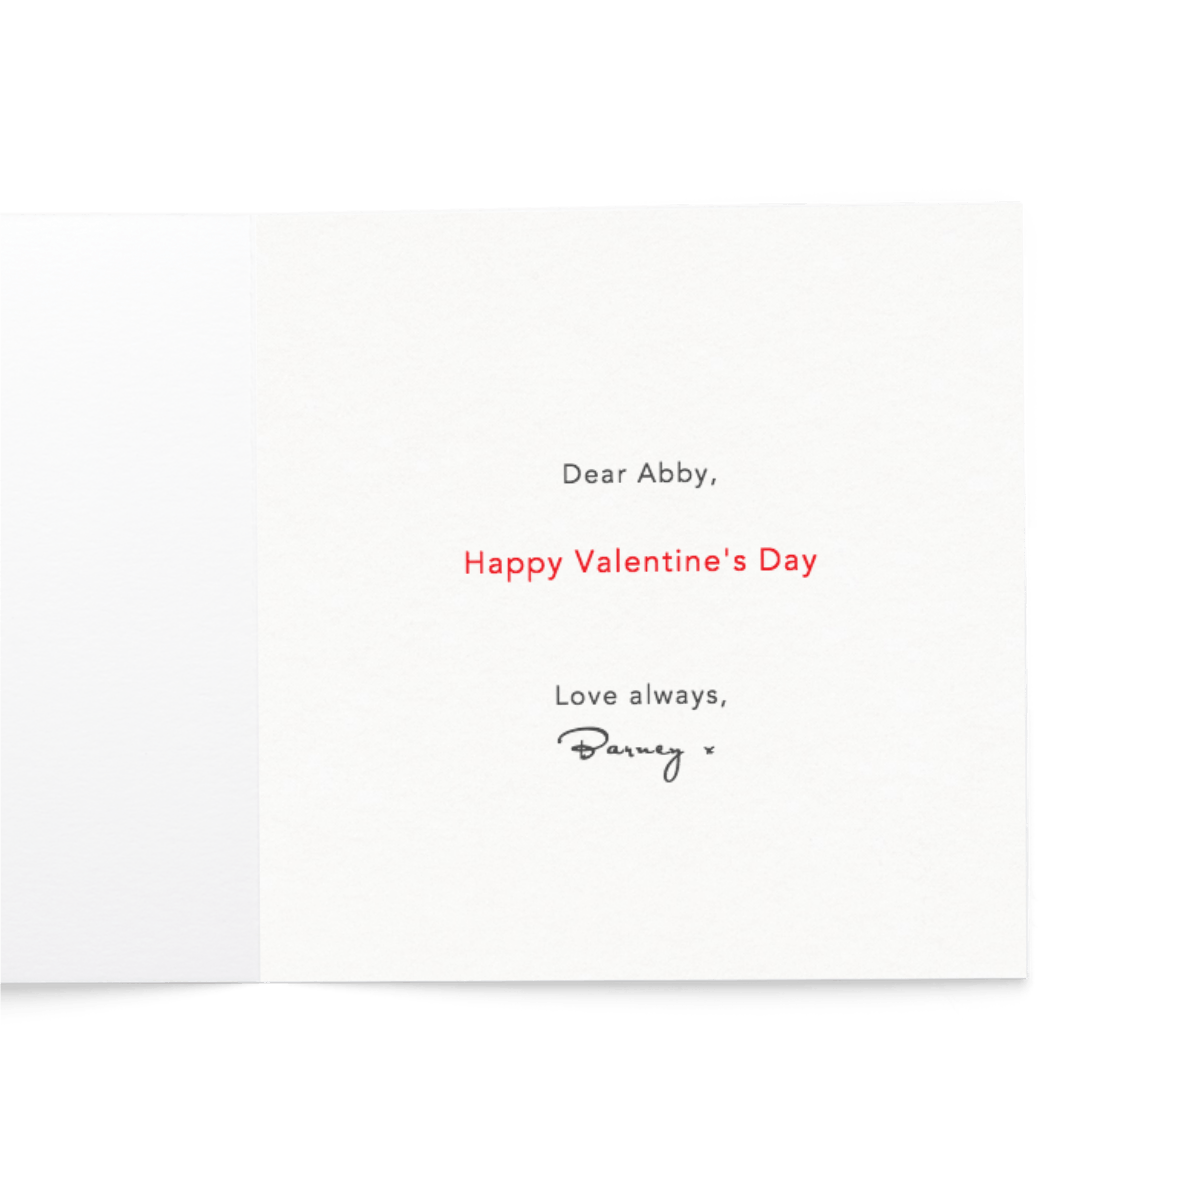 Https%3a%2f%2fwww.papier.com%2fproduct image%2f32047%2f21%2fvalentine s day photo frame 8045 inside 1517917479.png?ixlib=rb 1.1